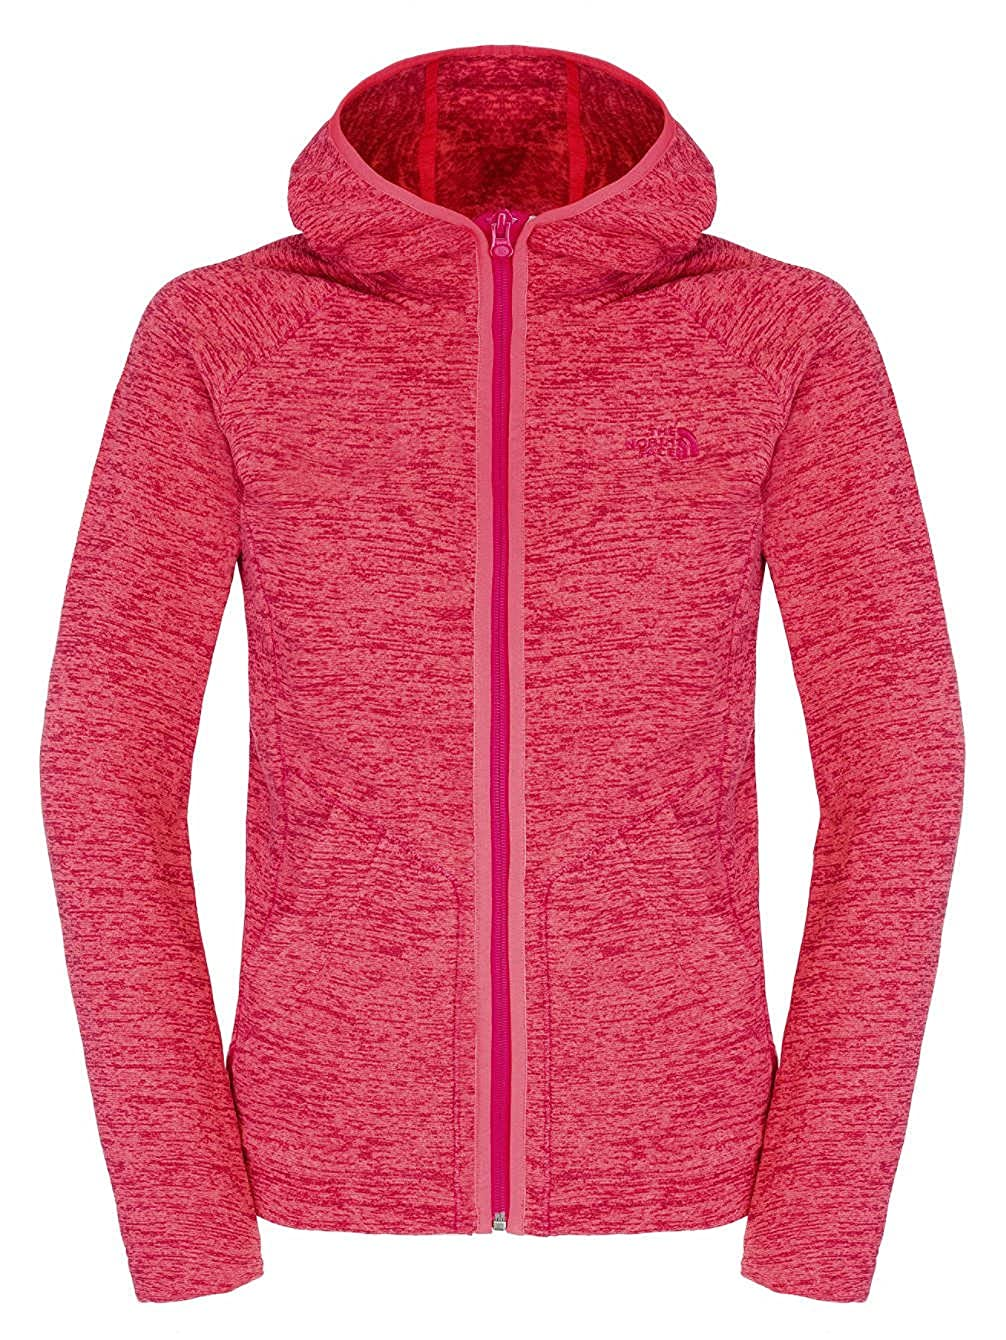 a4f8fcb2 The North Face Jacke Nikster Full Zip Hoodie - Sudadera con capucha ...